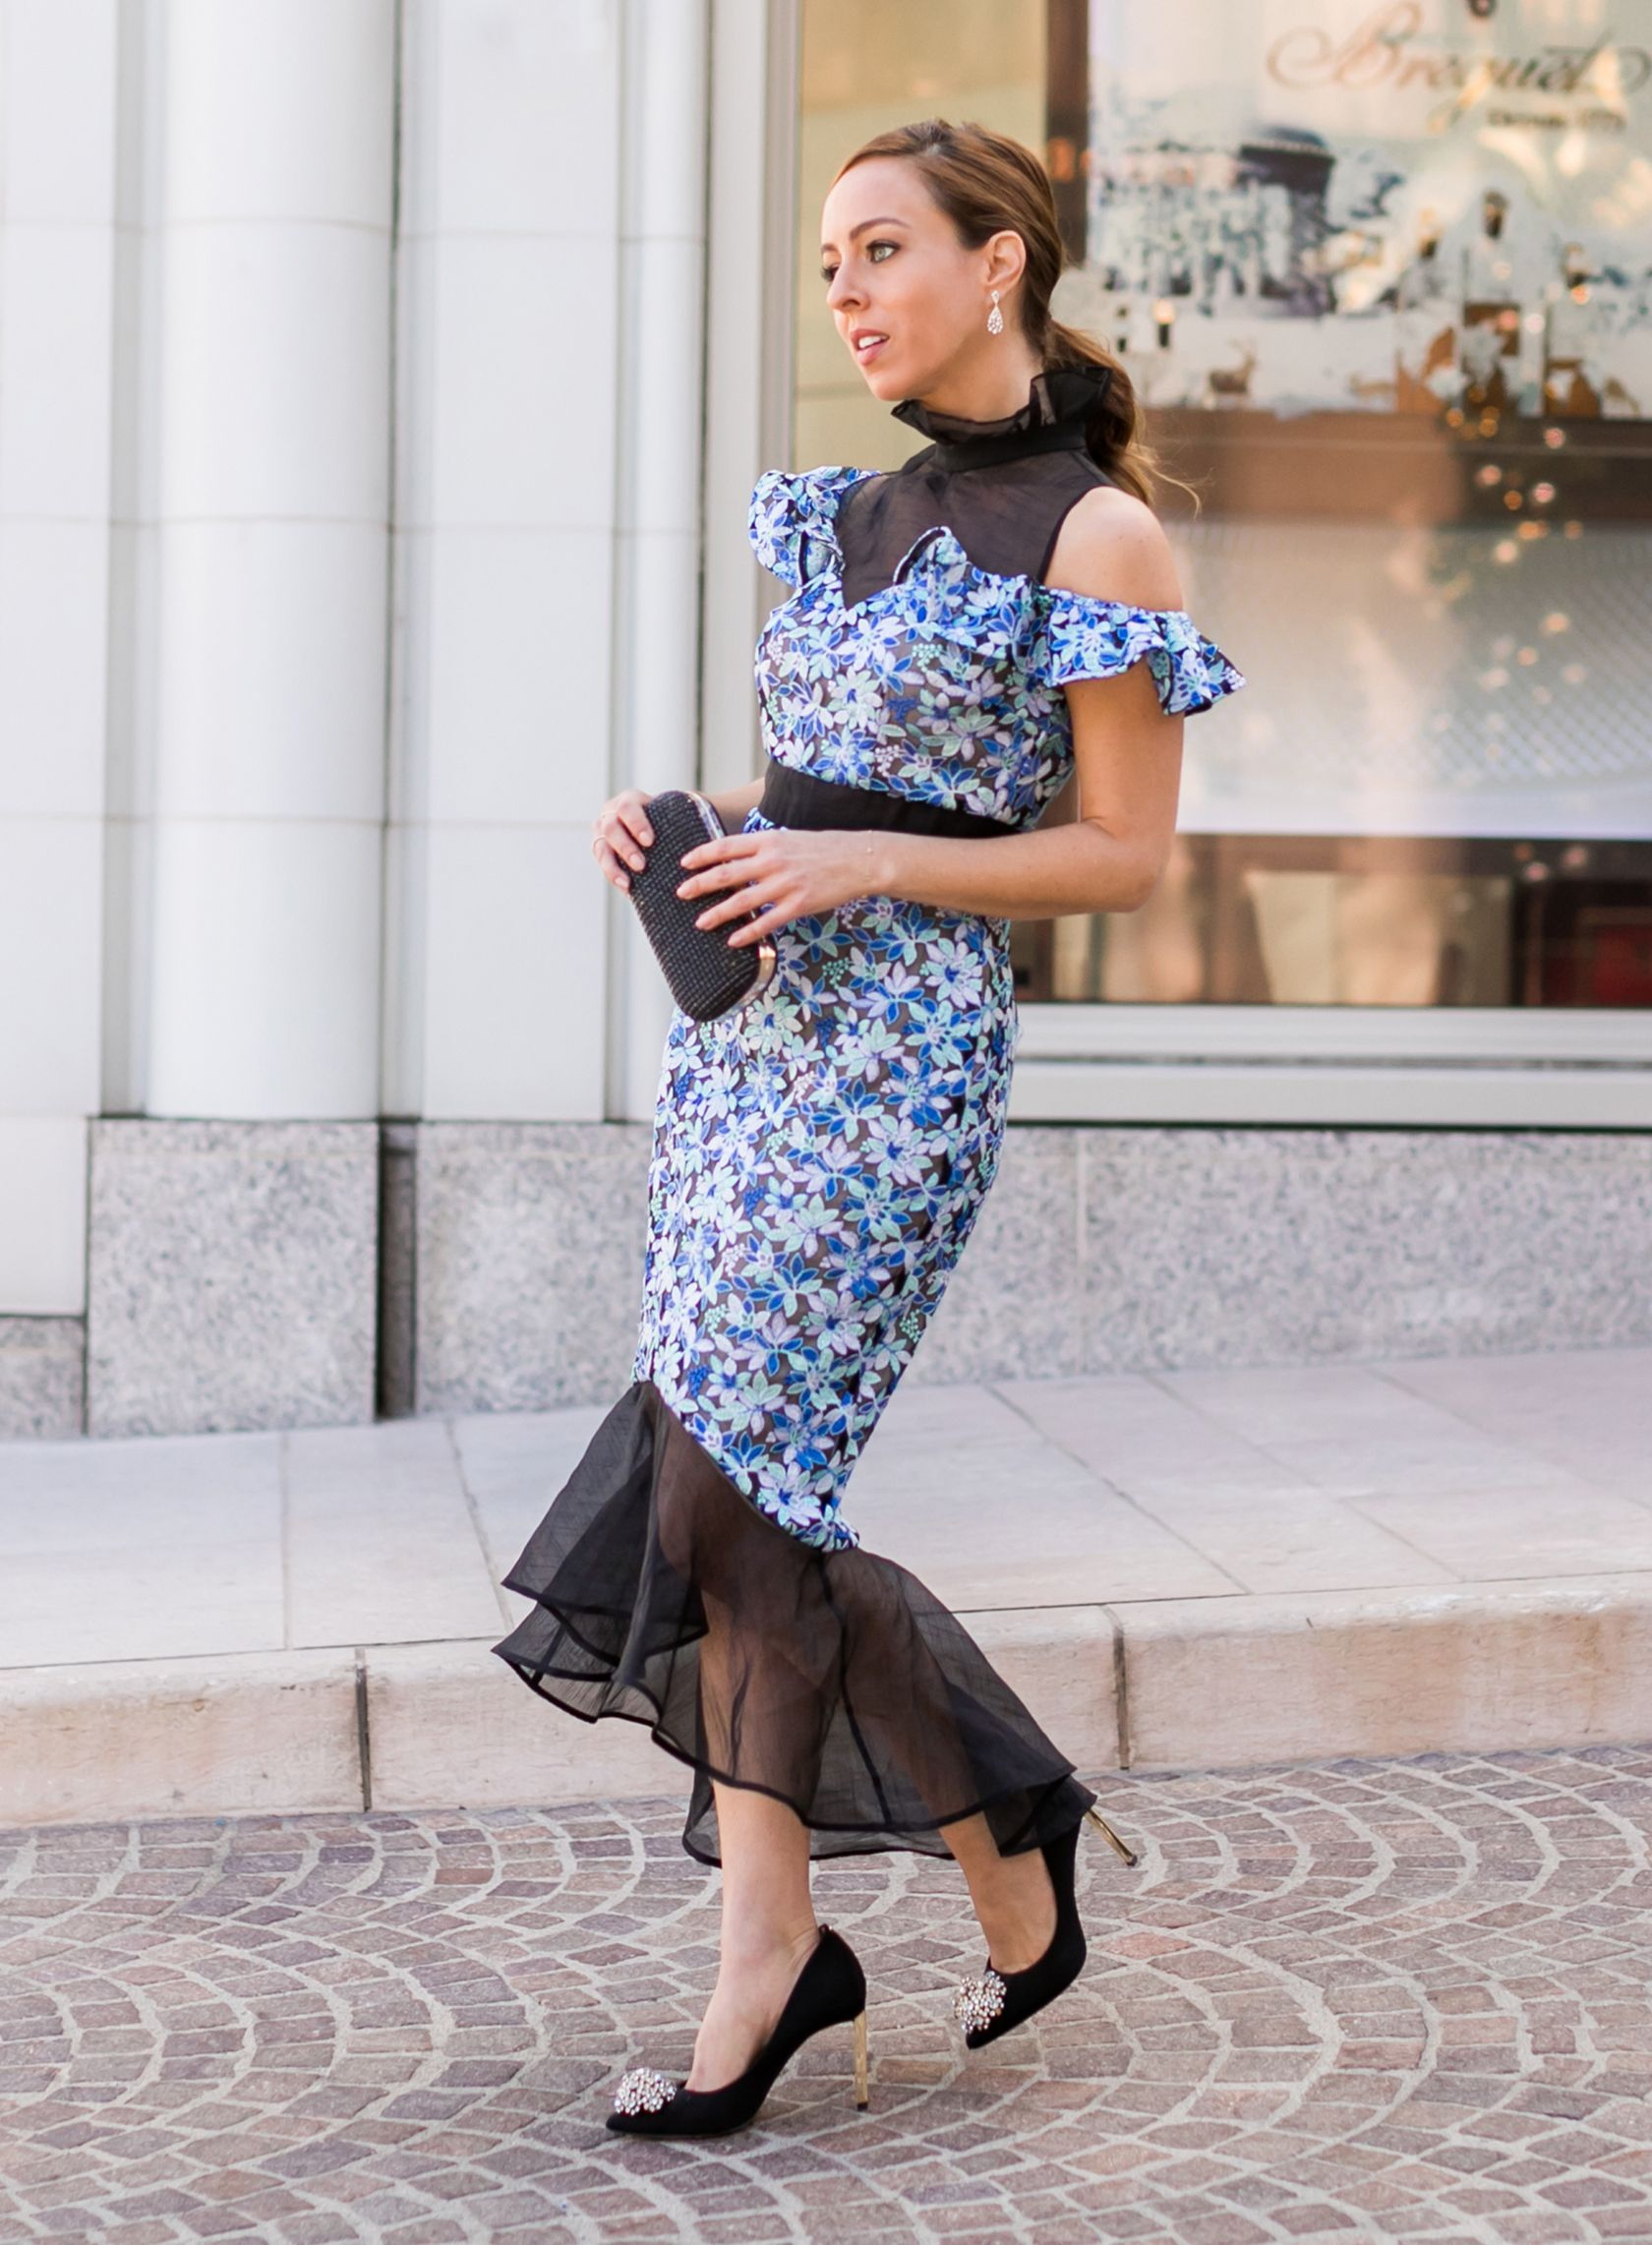 d4630aa3fc Sydne Style shows how to wear a midi dress if you re petite  dresses